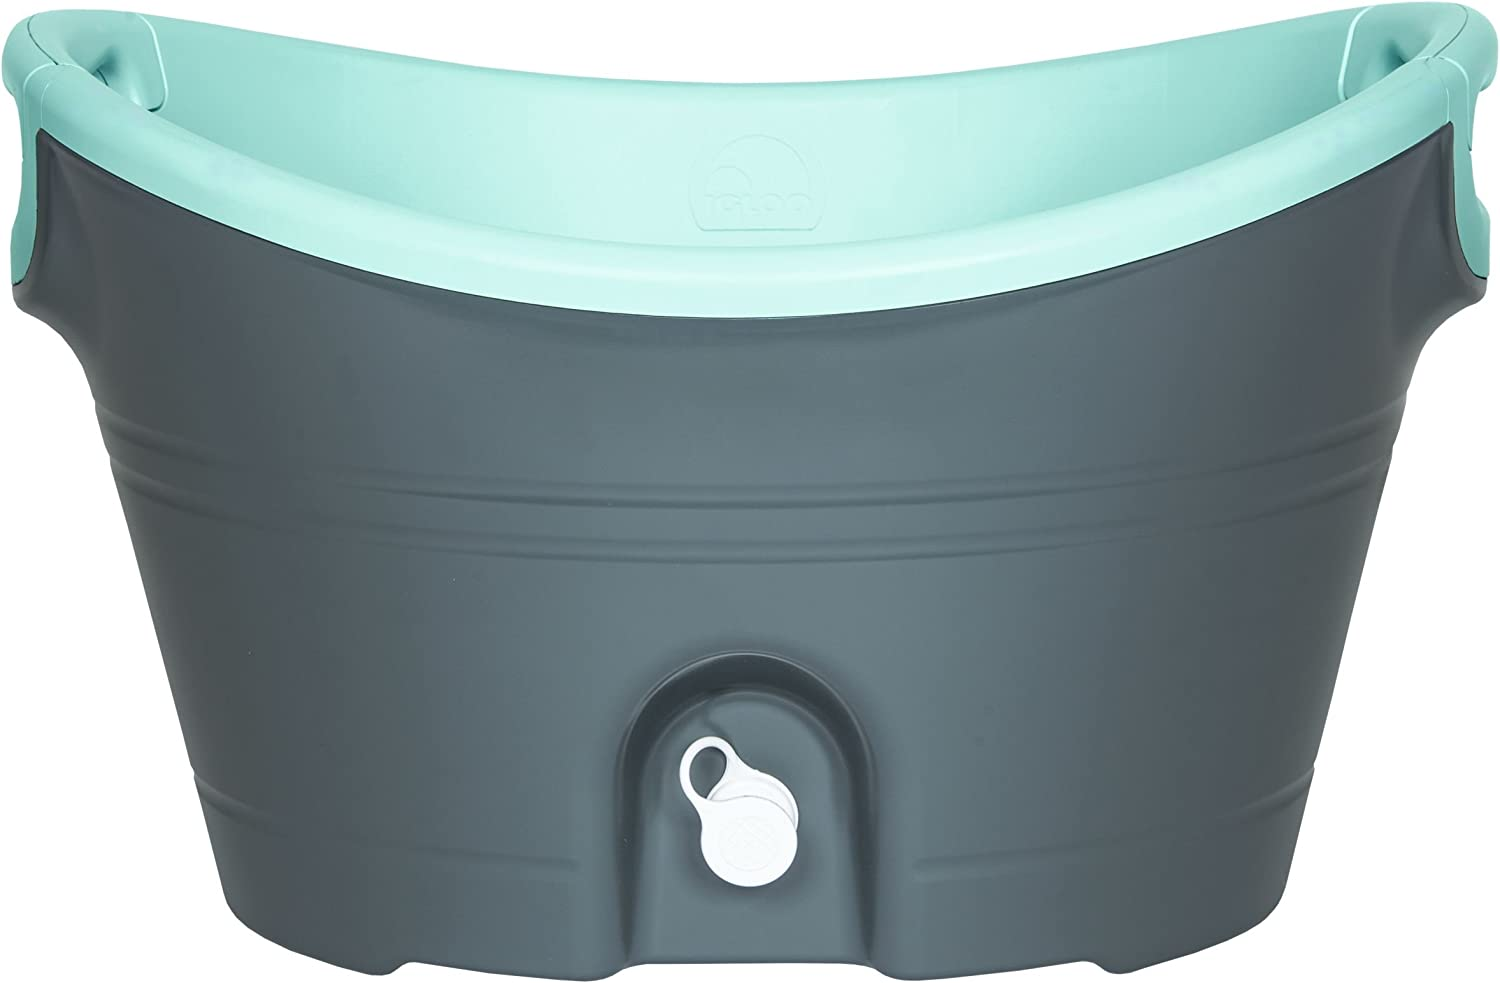 Igloo Insulated Party Bucket, 20 quart/18.9 L, Charcoal Seafoam Green/Translucent - 49638